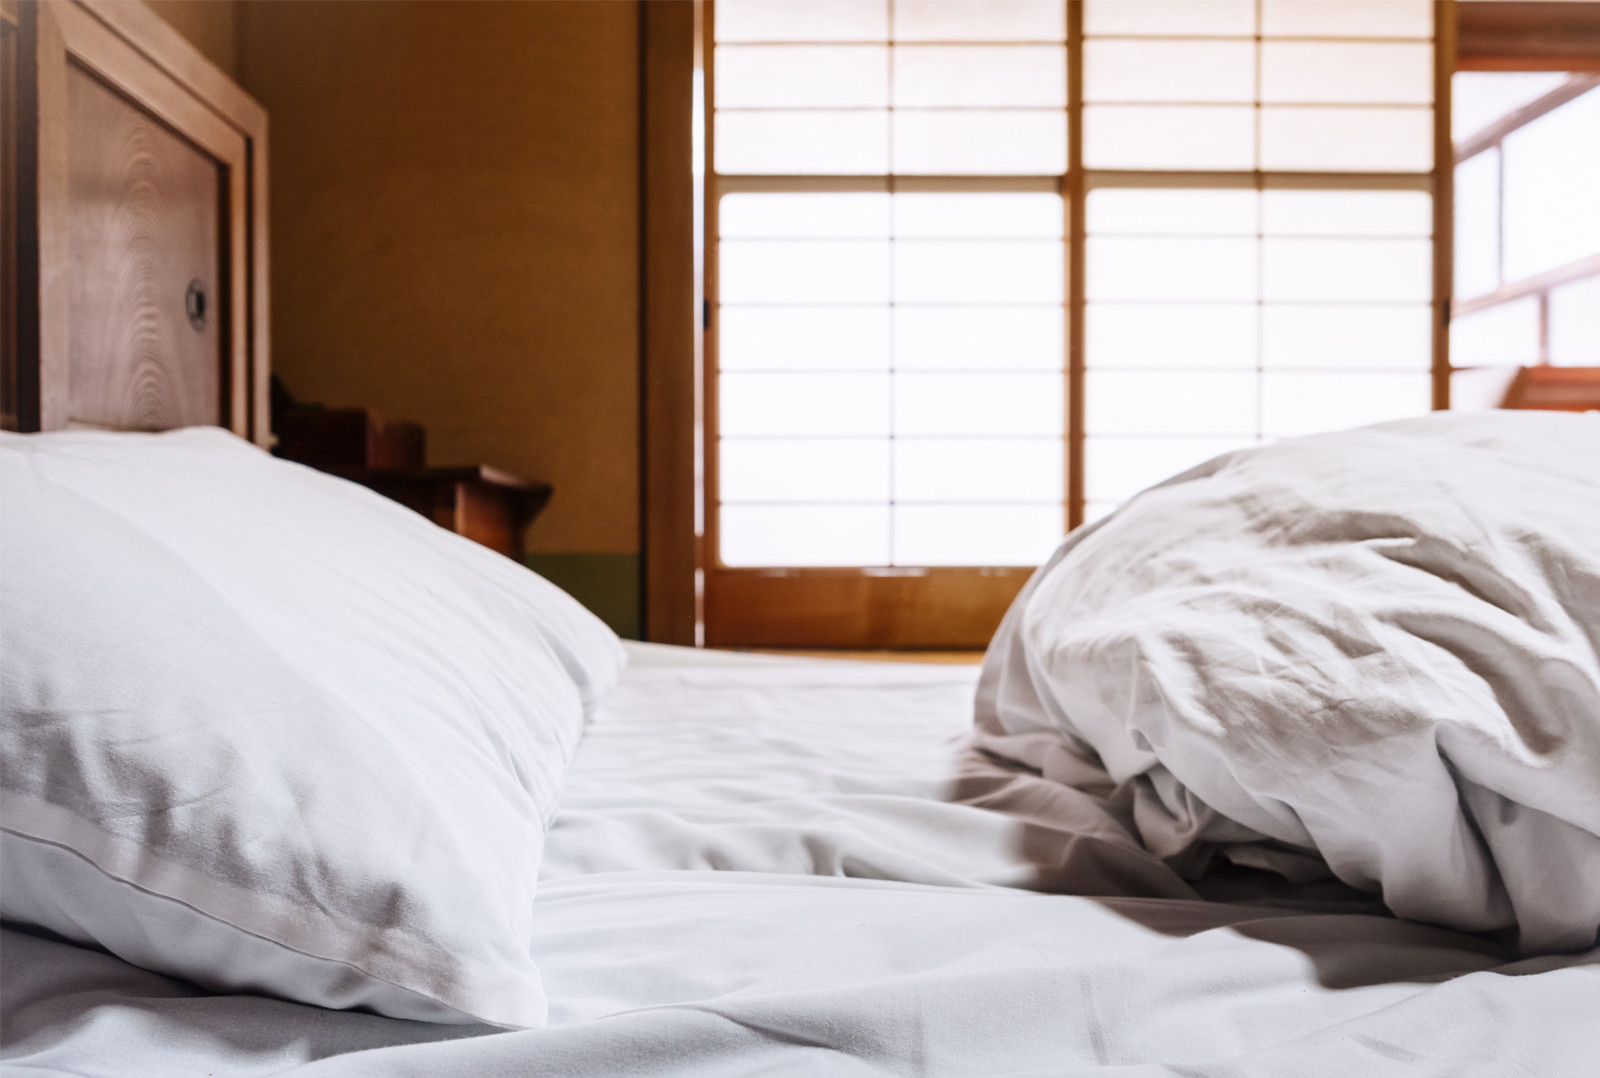 Everything You Need To Know Before Buying a Japanese Futon Mattress